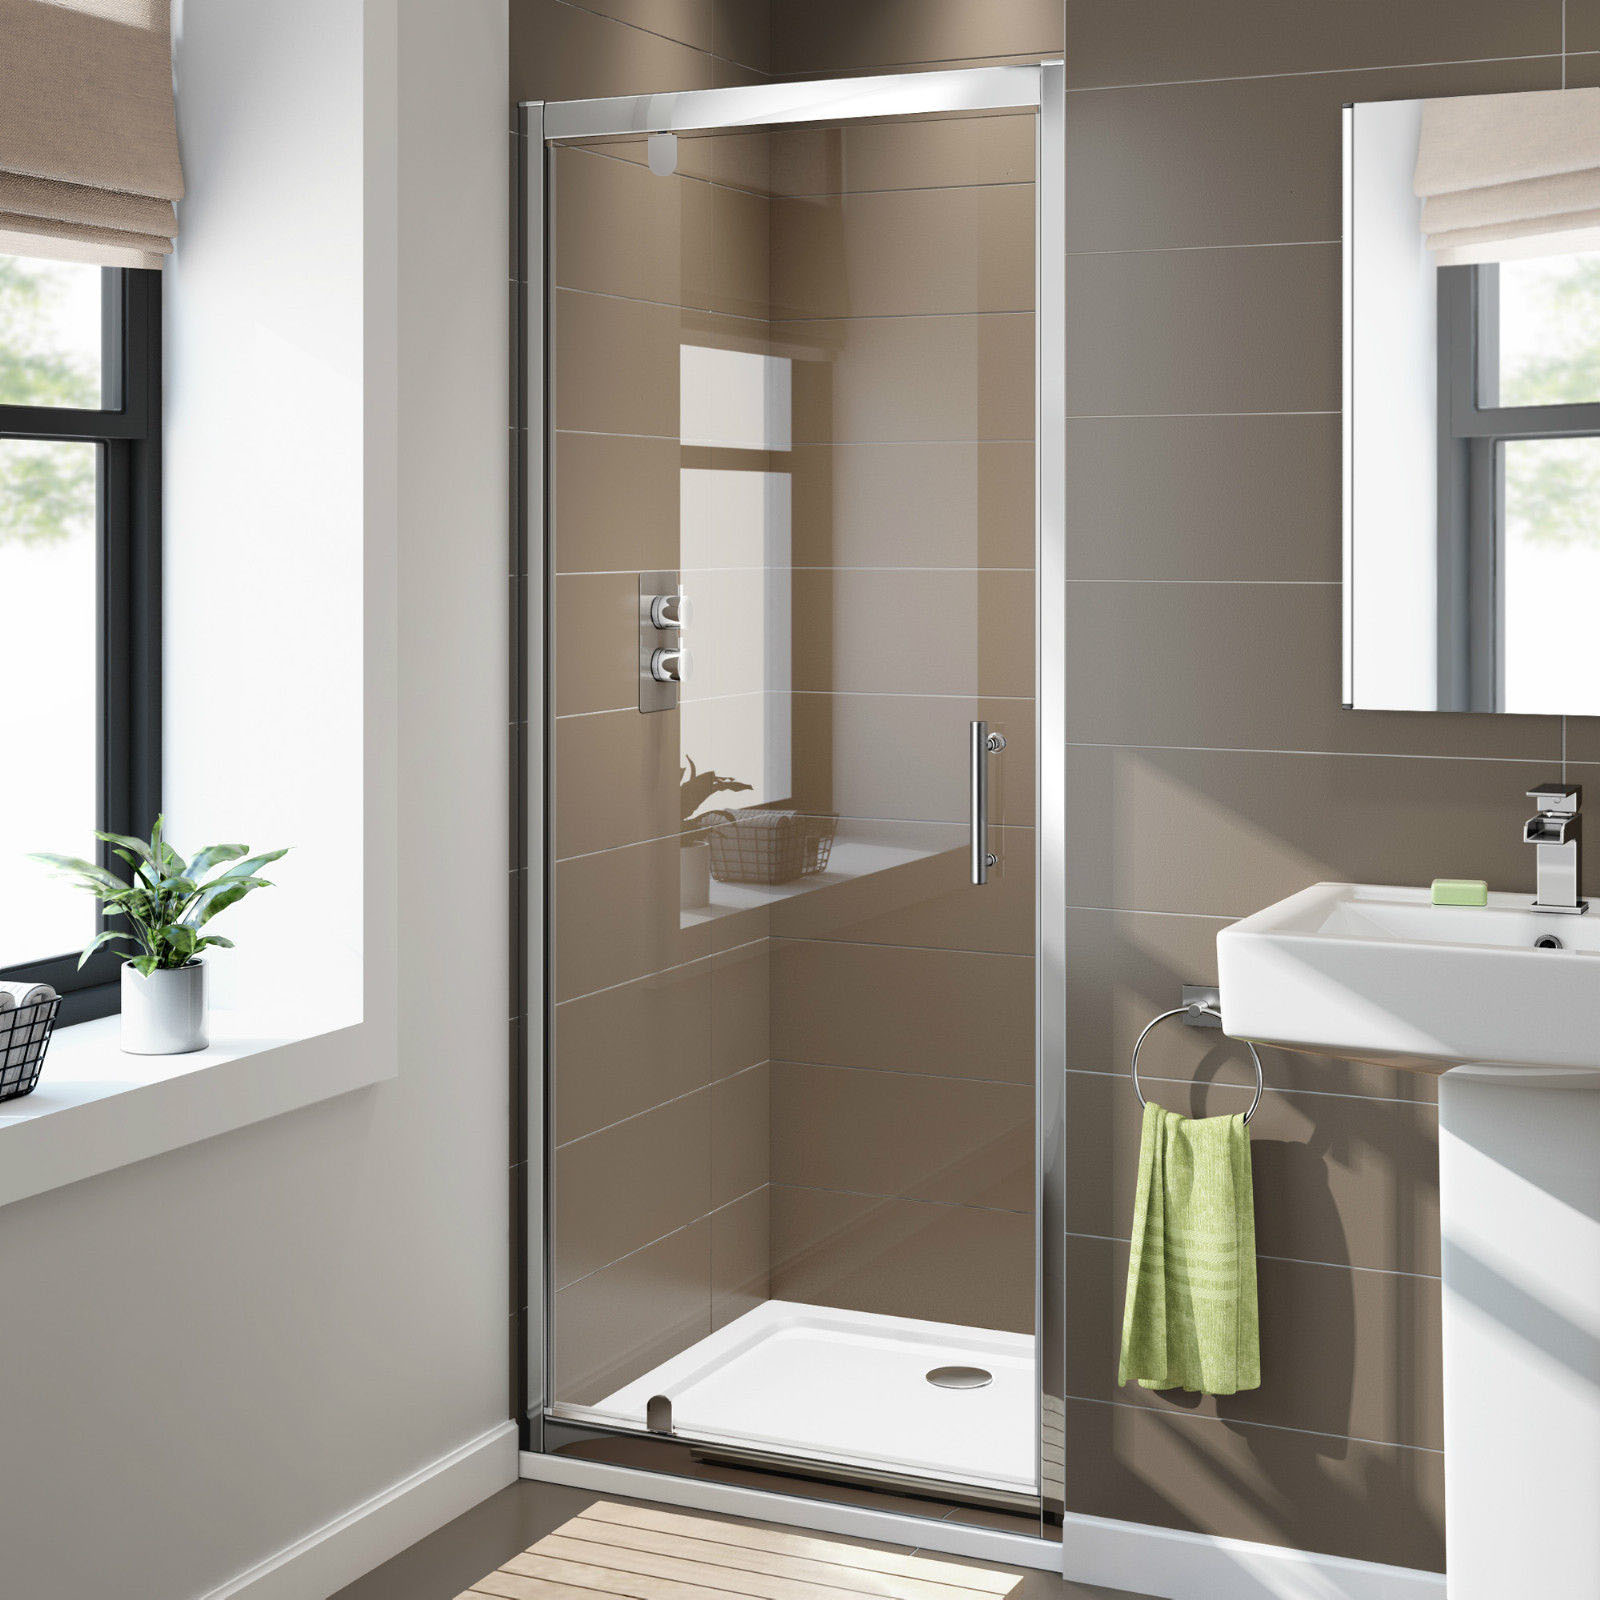 Details About Shower Screen Wall To Wall Framed Pivot Door Shower Base Enclosure